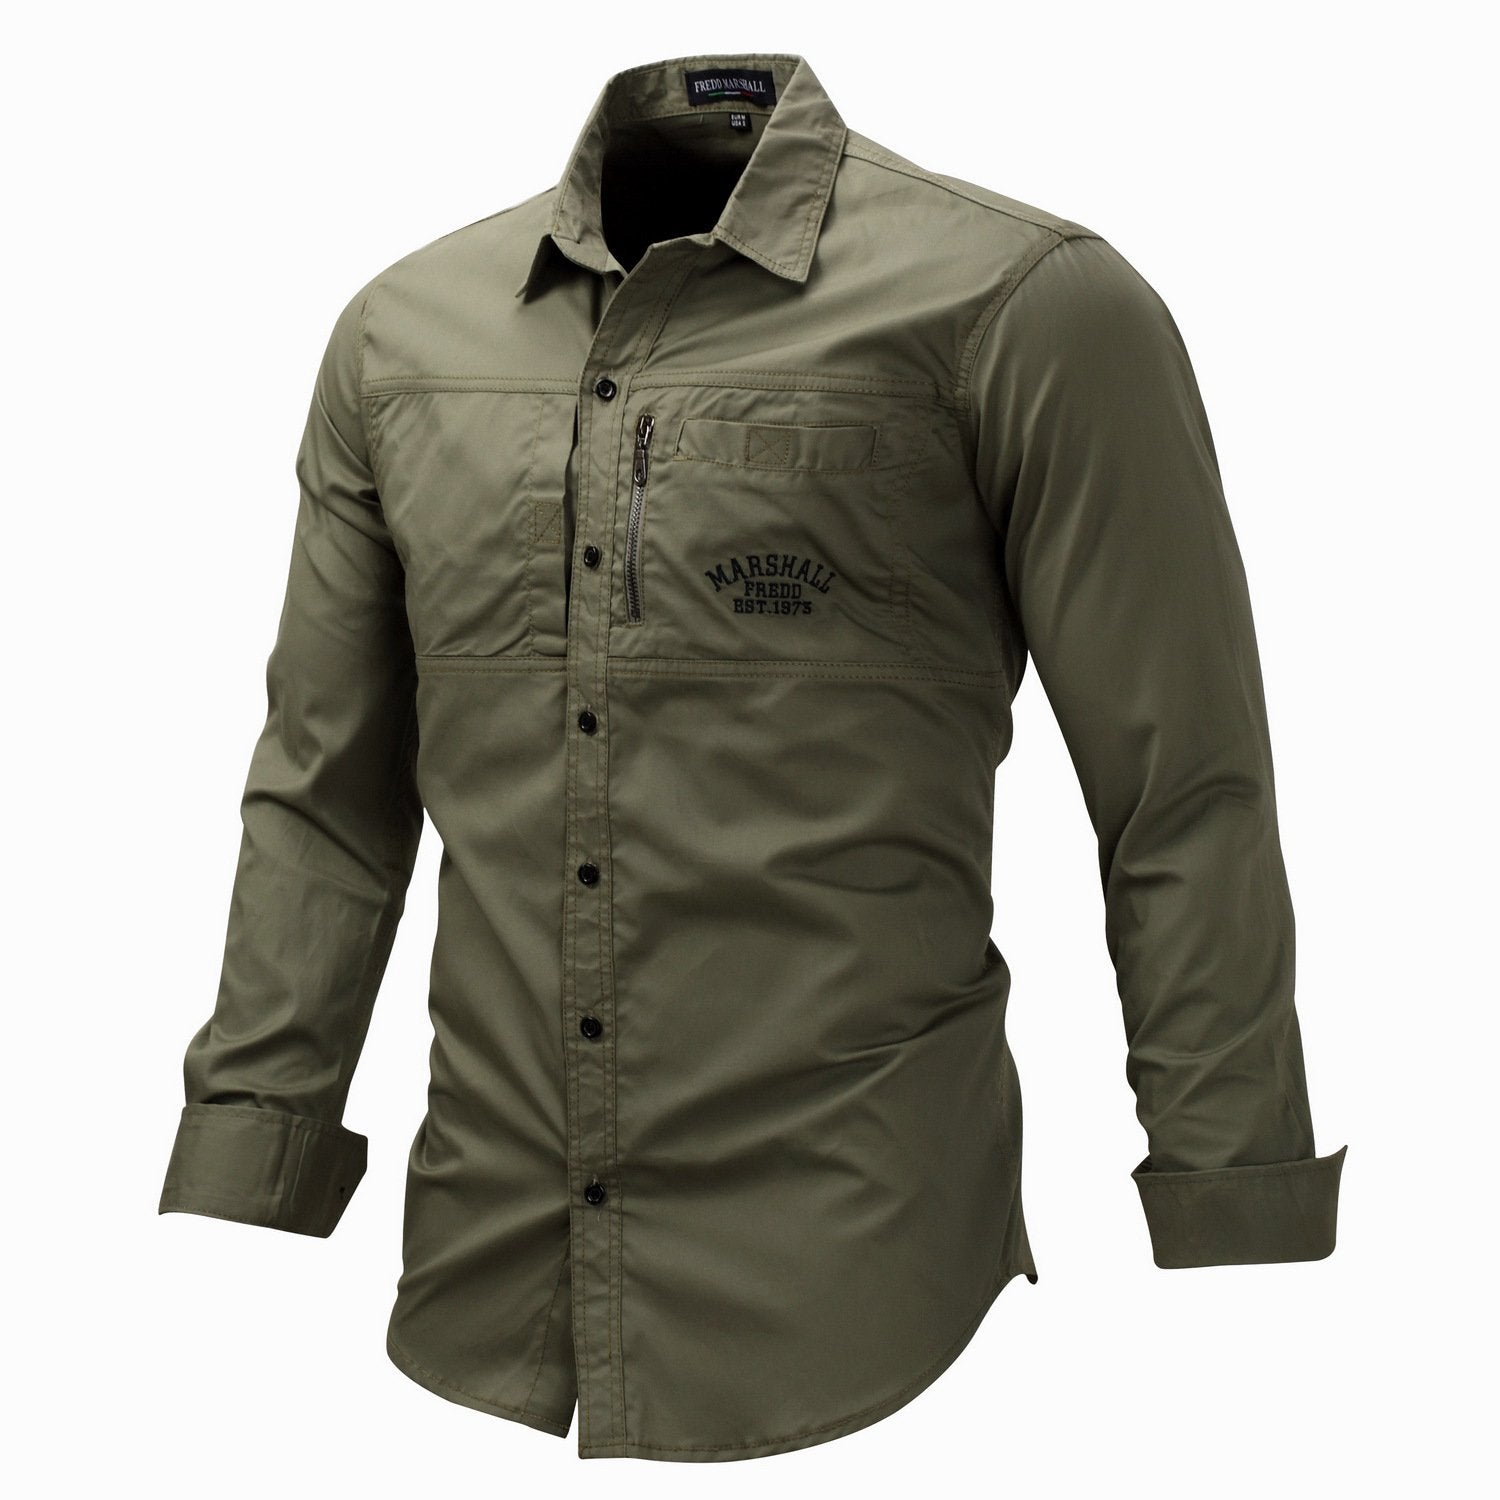 Men's outdoor quick-drying long-sleeved shirt